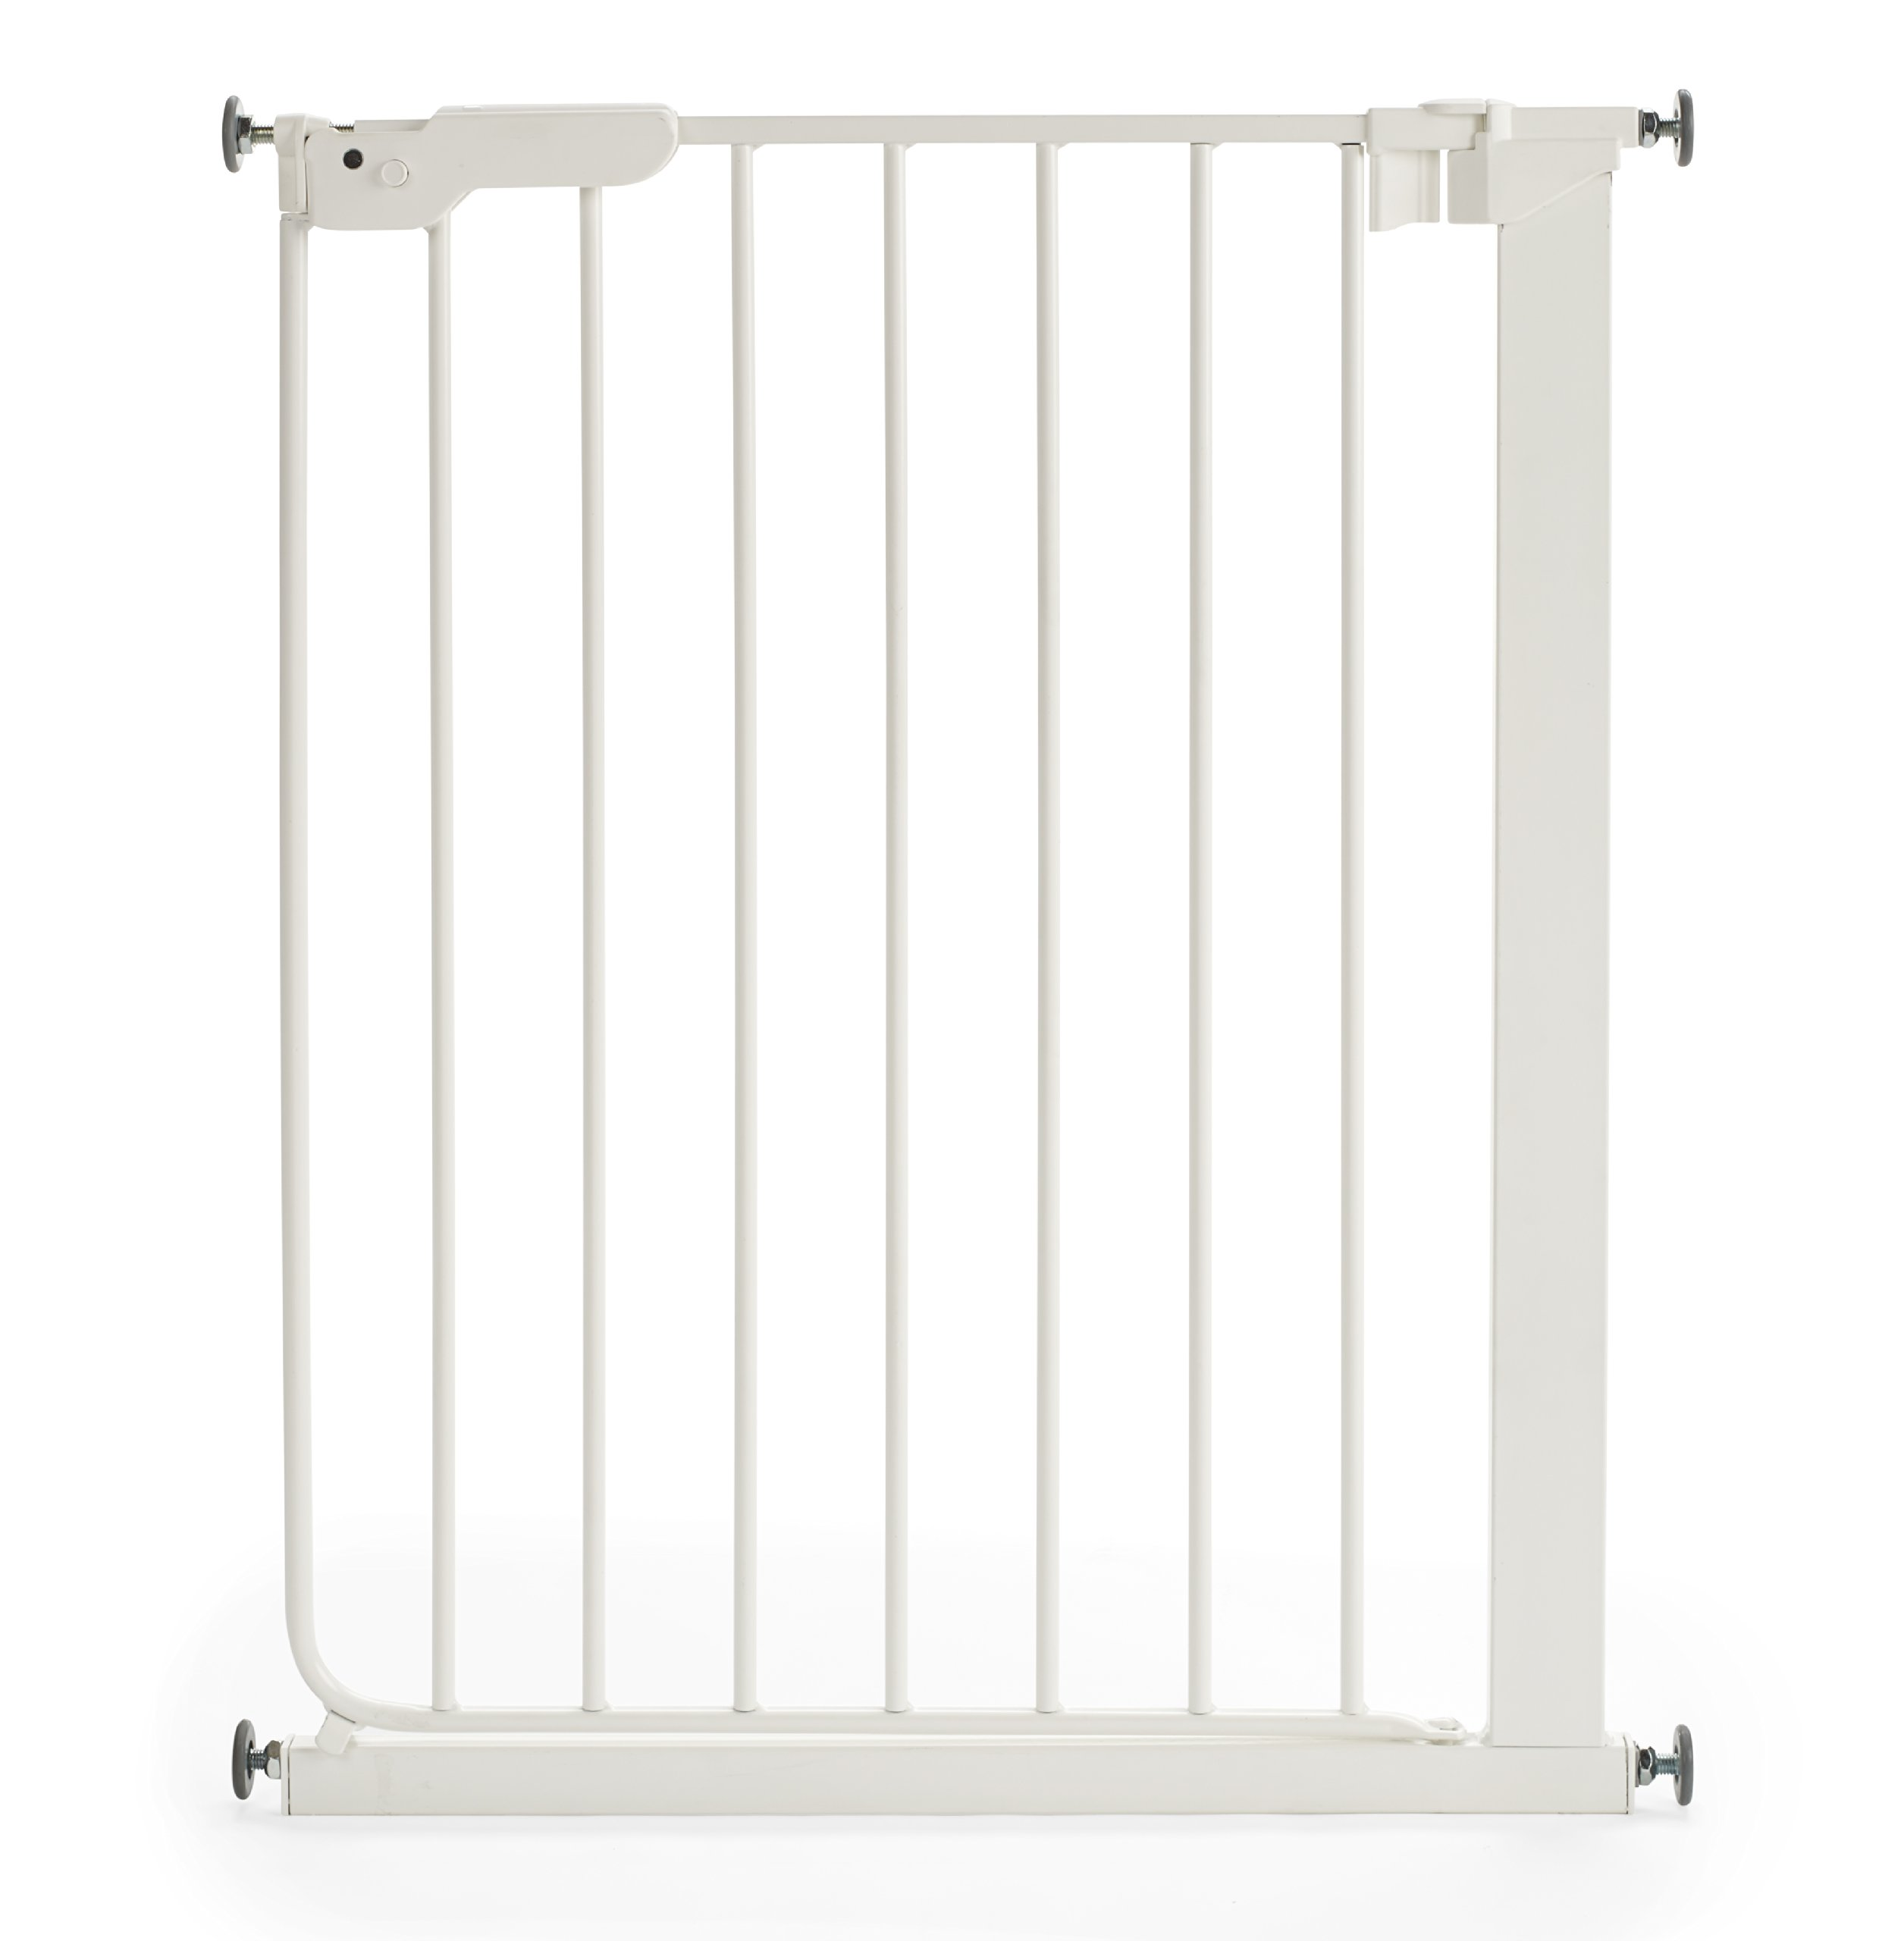 BabyDan 51994-2400-27-88 Slim Fit Stair Gate White  Baby Dan slim fit safety gate is designed for extra narrow openings The pressure fit make this super easy to install It offers a one hand 2 way opening for easy access between rooms 1